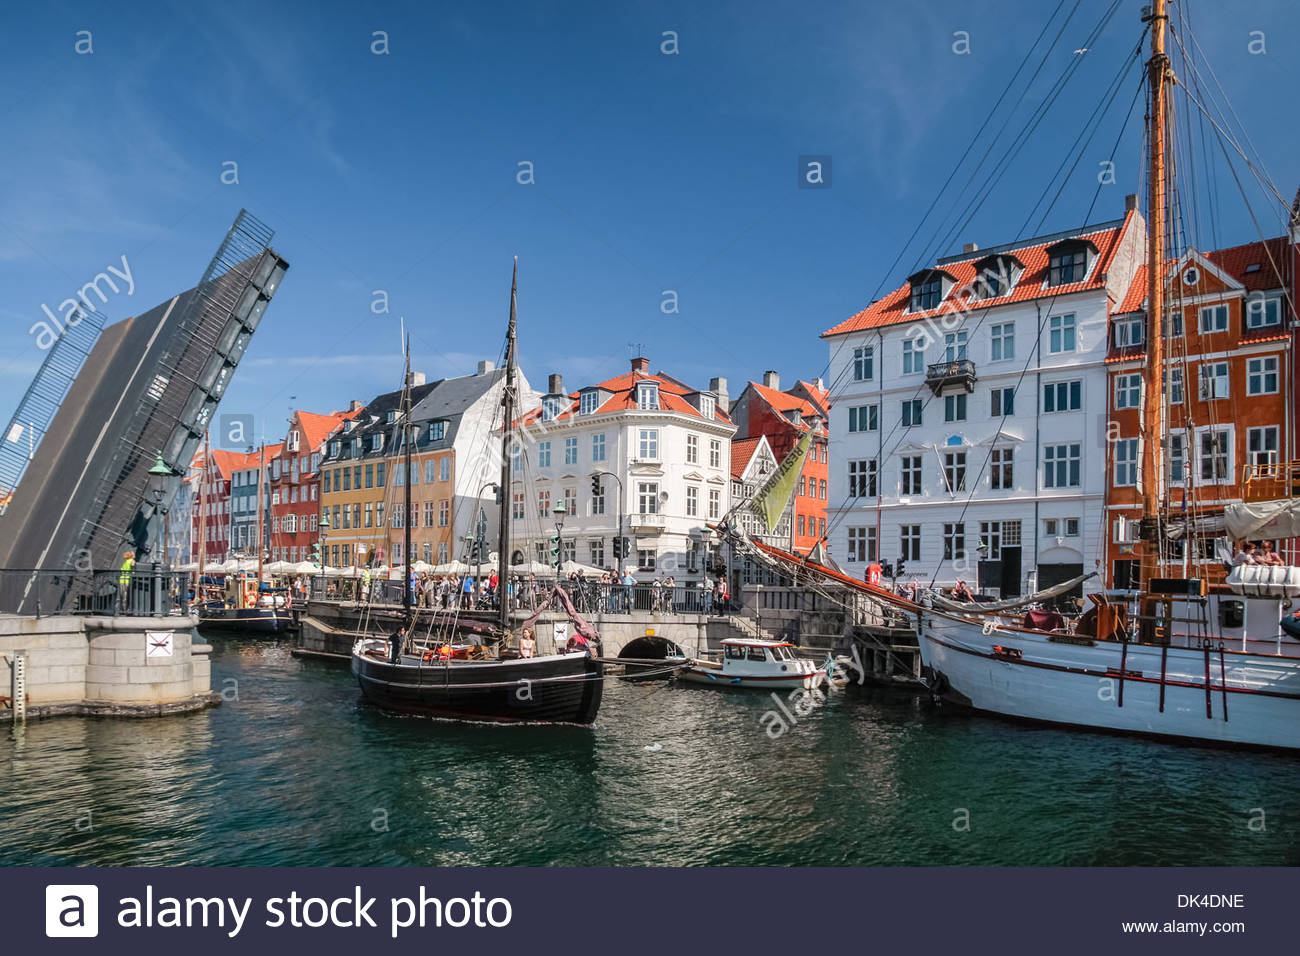 Drawbridge with sail boat in Nyhavn in Copenhagen, Denmark - Stock Image